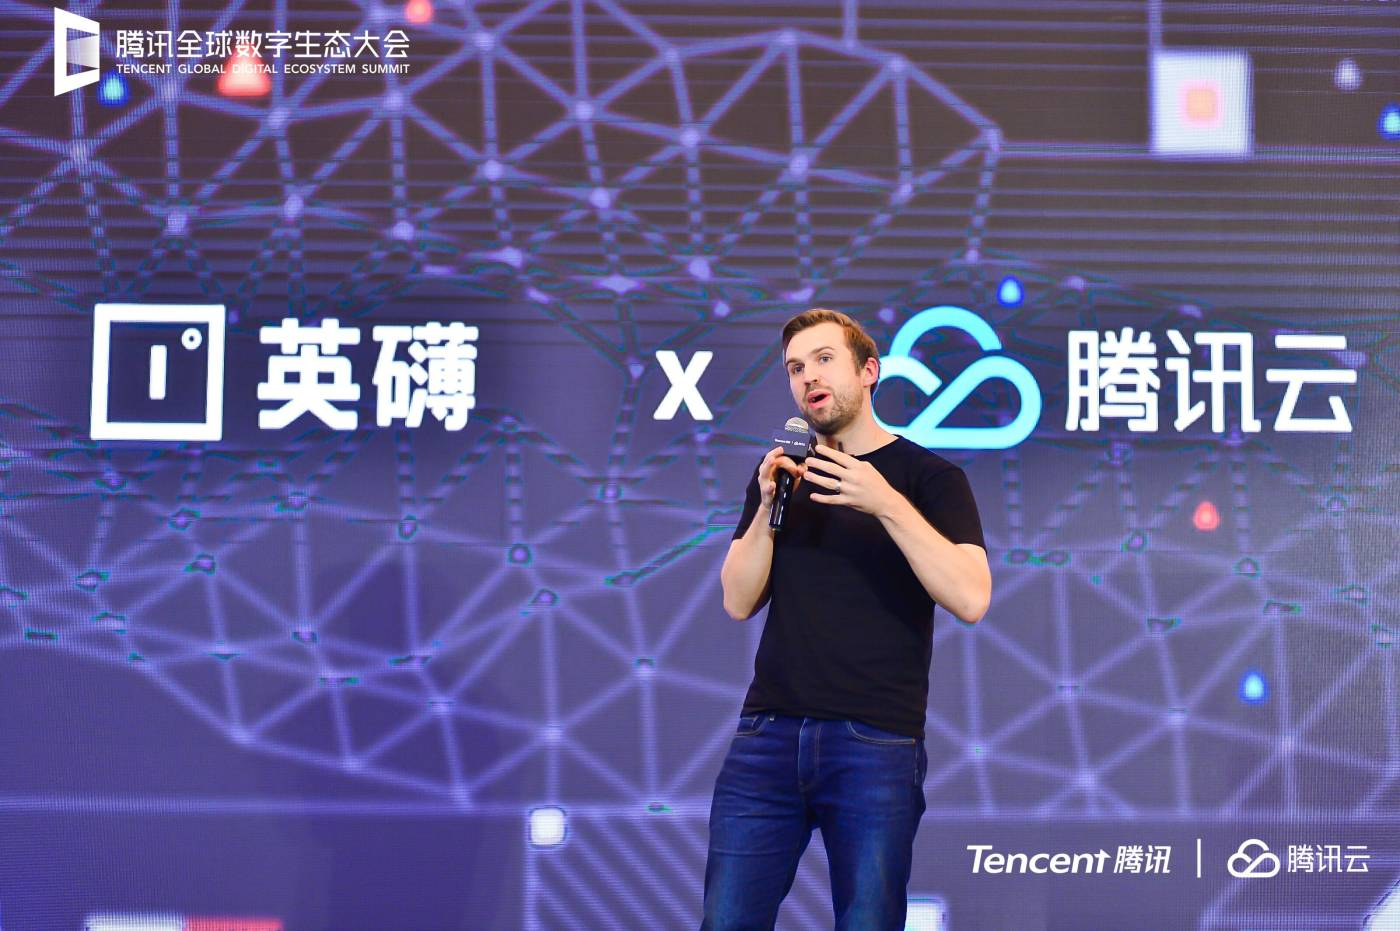 Peter Lipka speaking at the Tencent Global Digital Ecosystem Summit